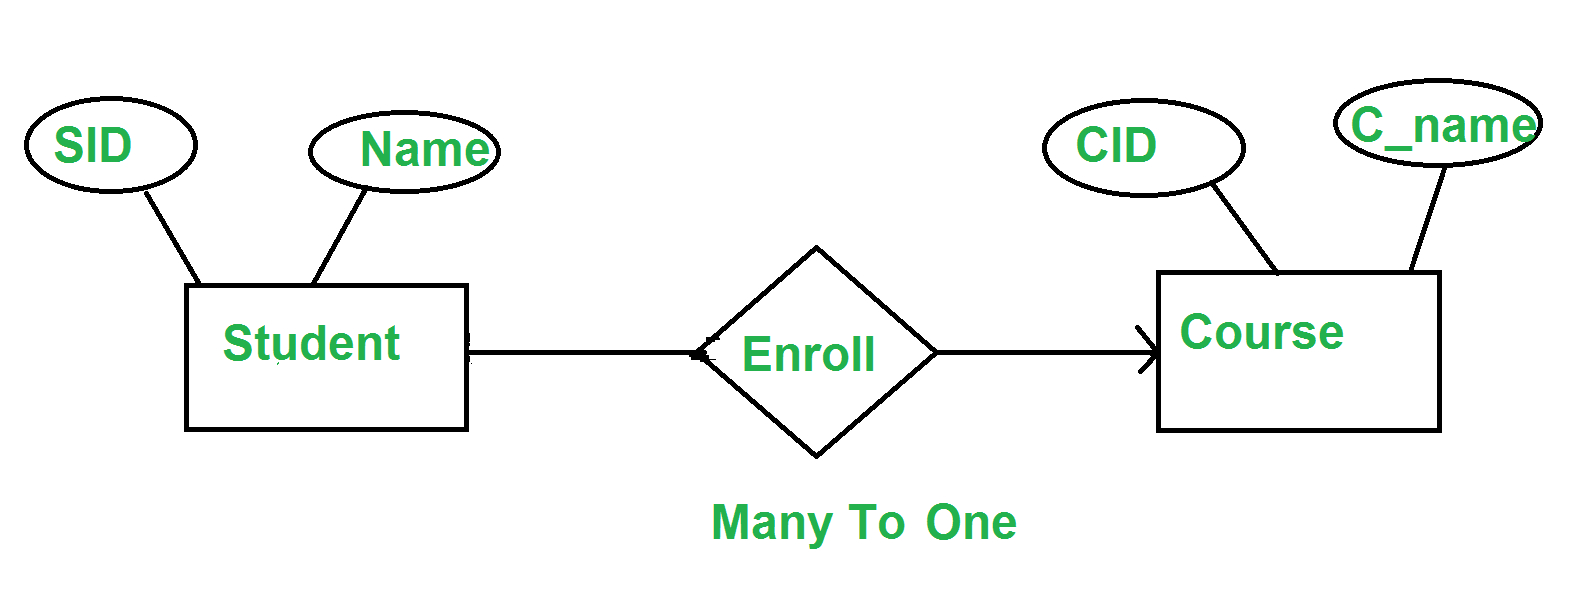 Minimization Of Er Diagrams - Geeksforgeeks within Er Diagram Many To One